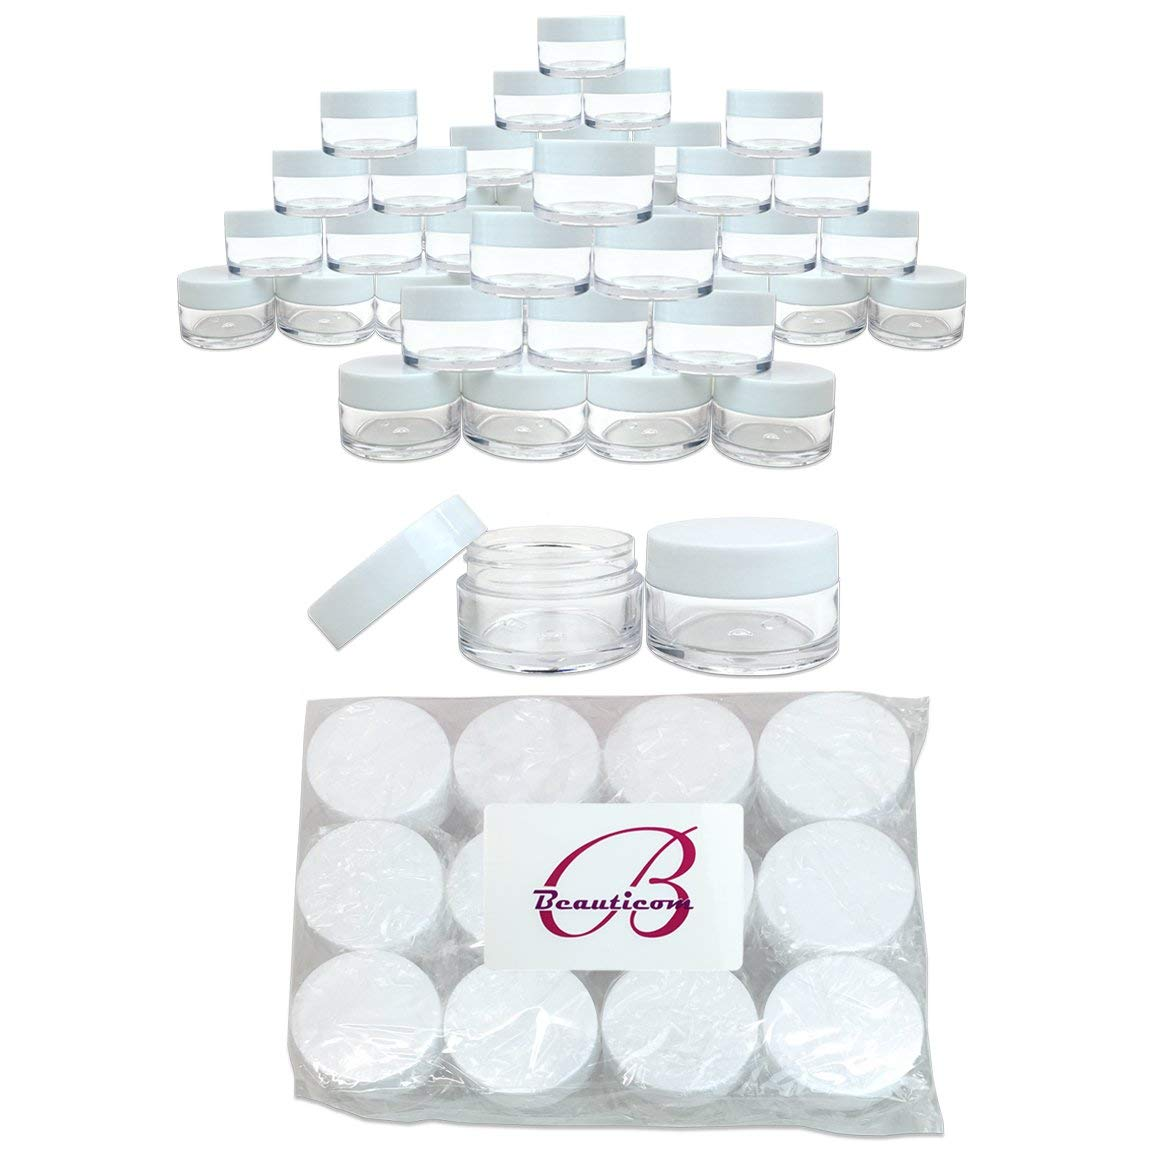 Beauticom 20g/20ml USA Acrylic Round Clear Jars with Lids for Lip Balms, Creams, Make Up, Cosmetics, Samples, Ointments (936 Pieces Jars + Lids, WHITE)